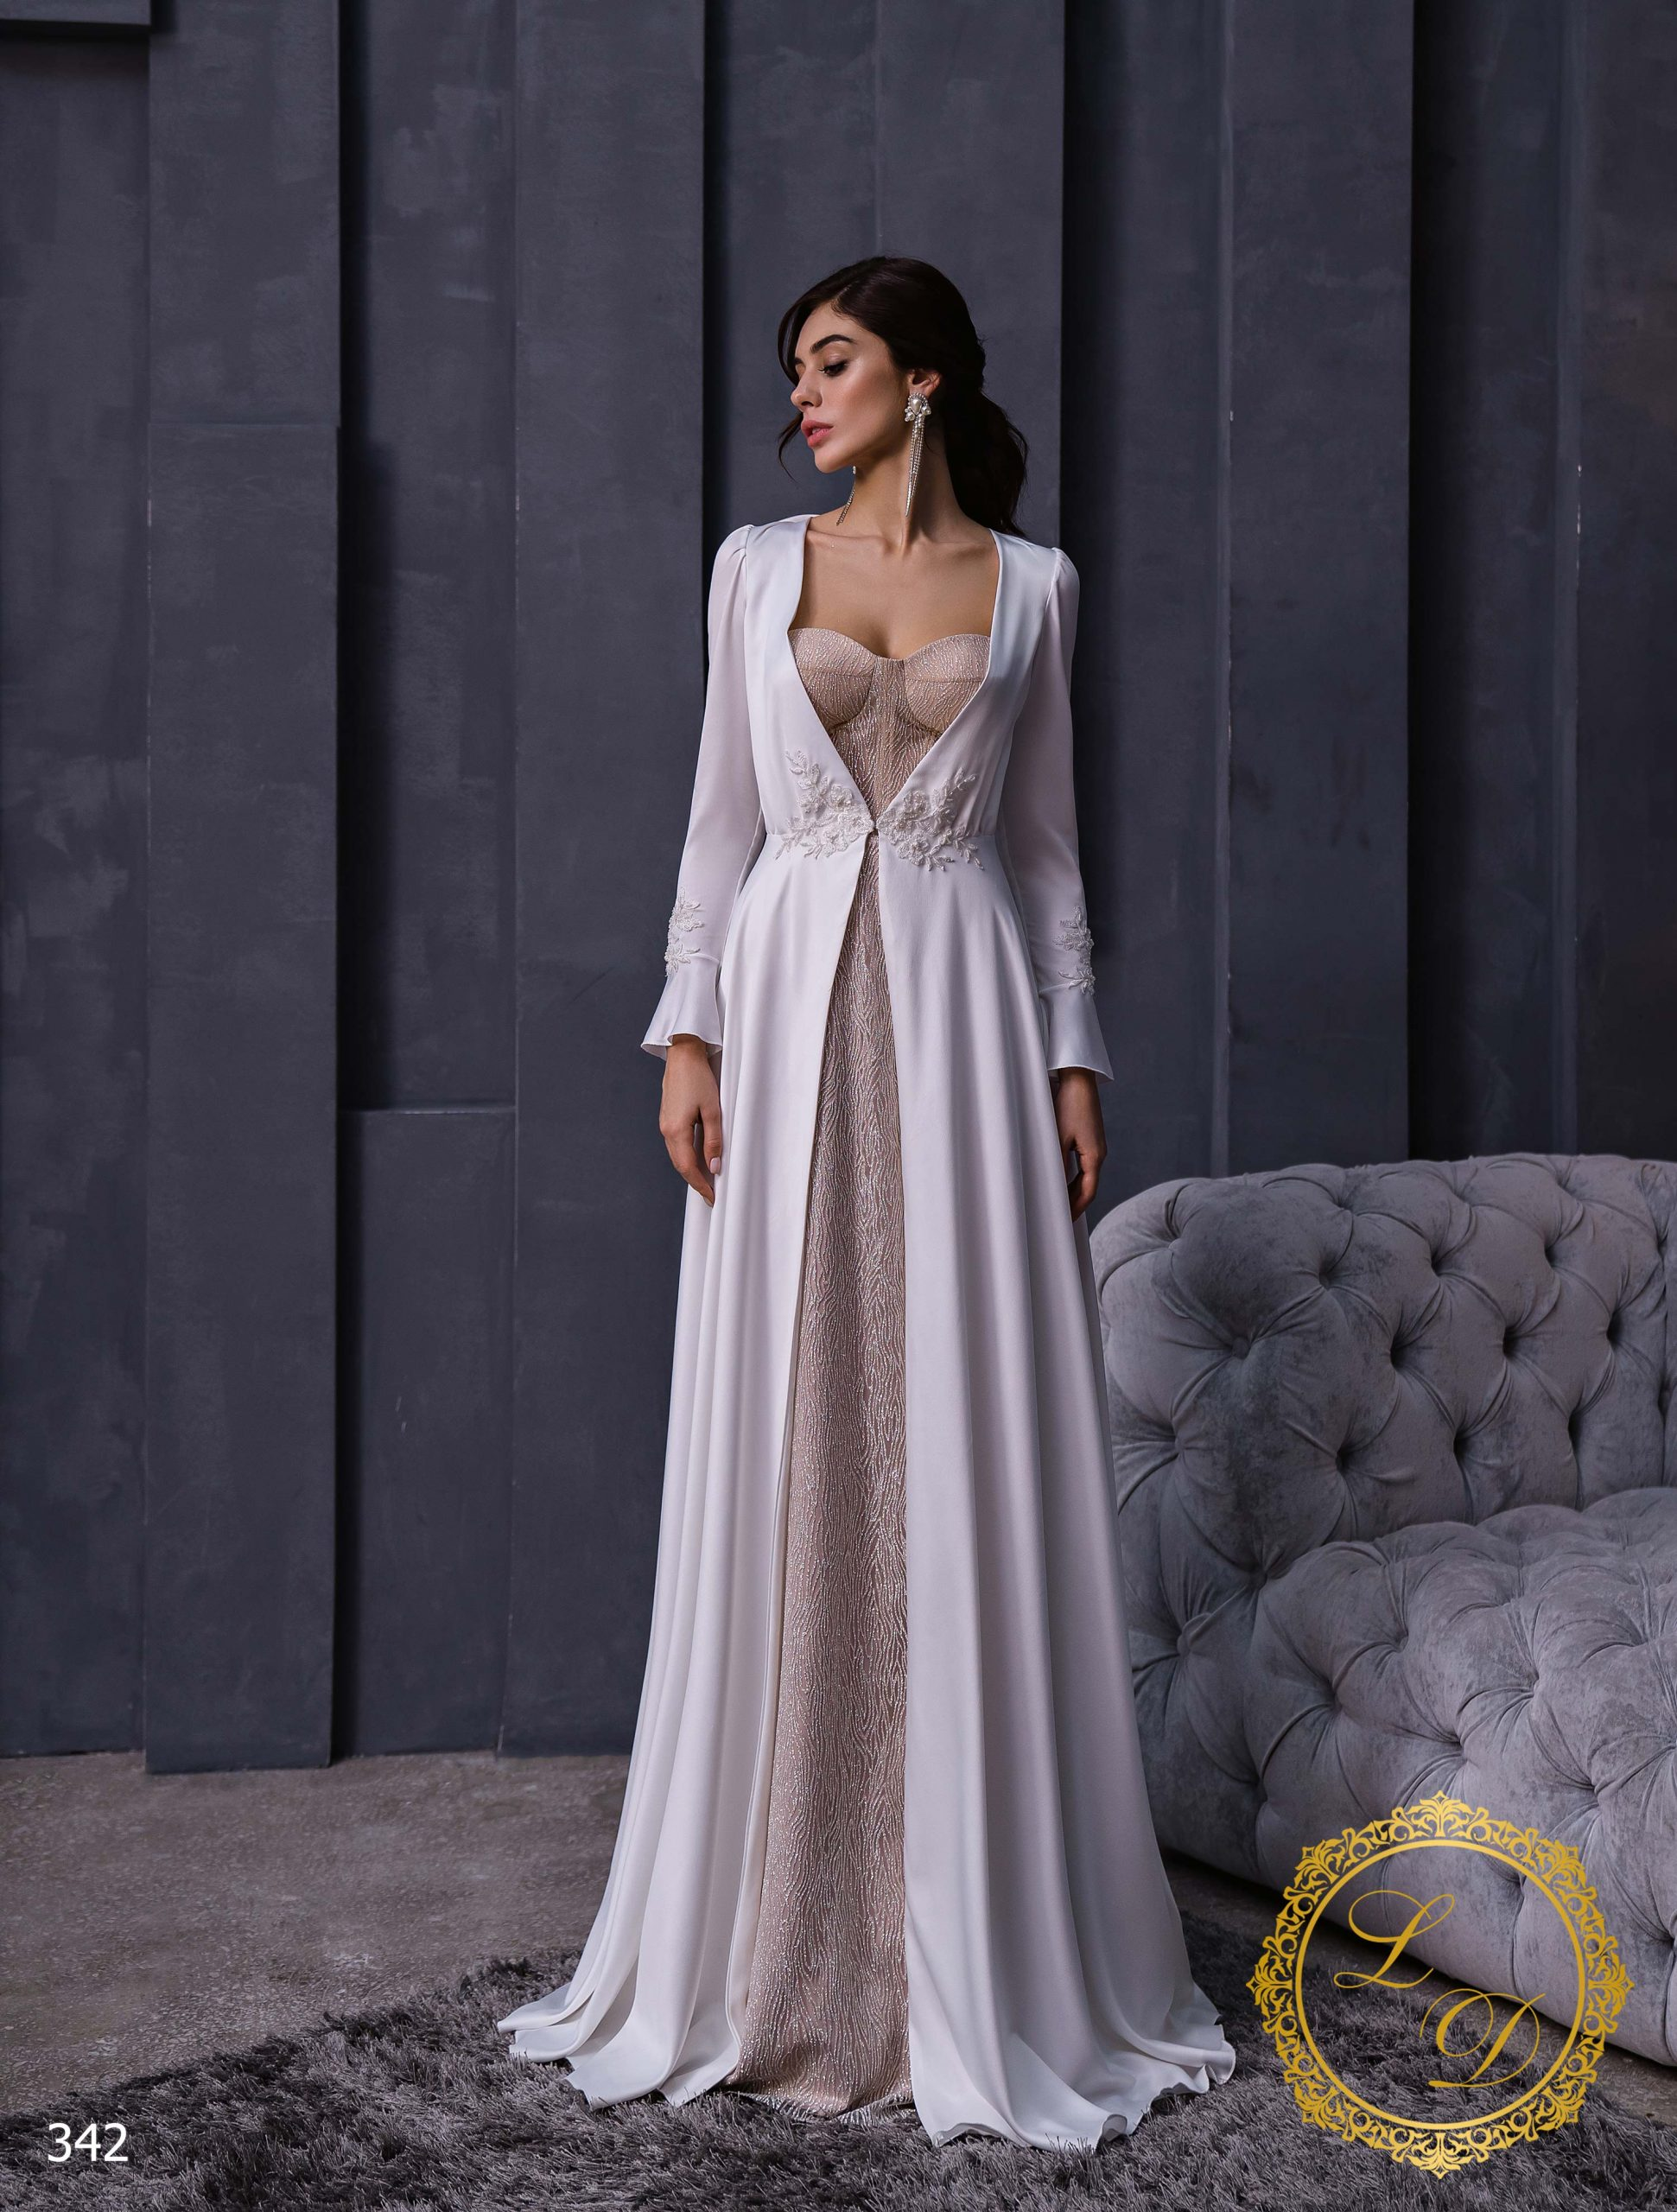 Wedding dress Lady Di 342-1